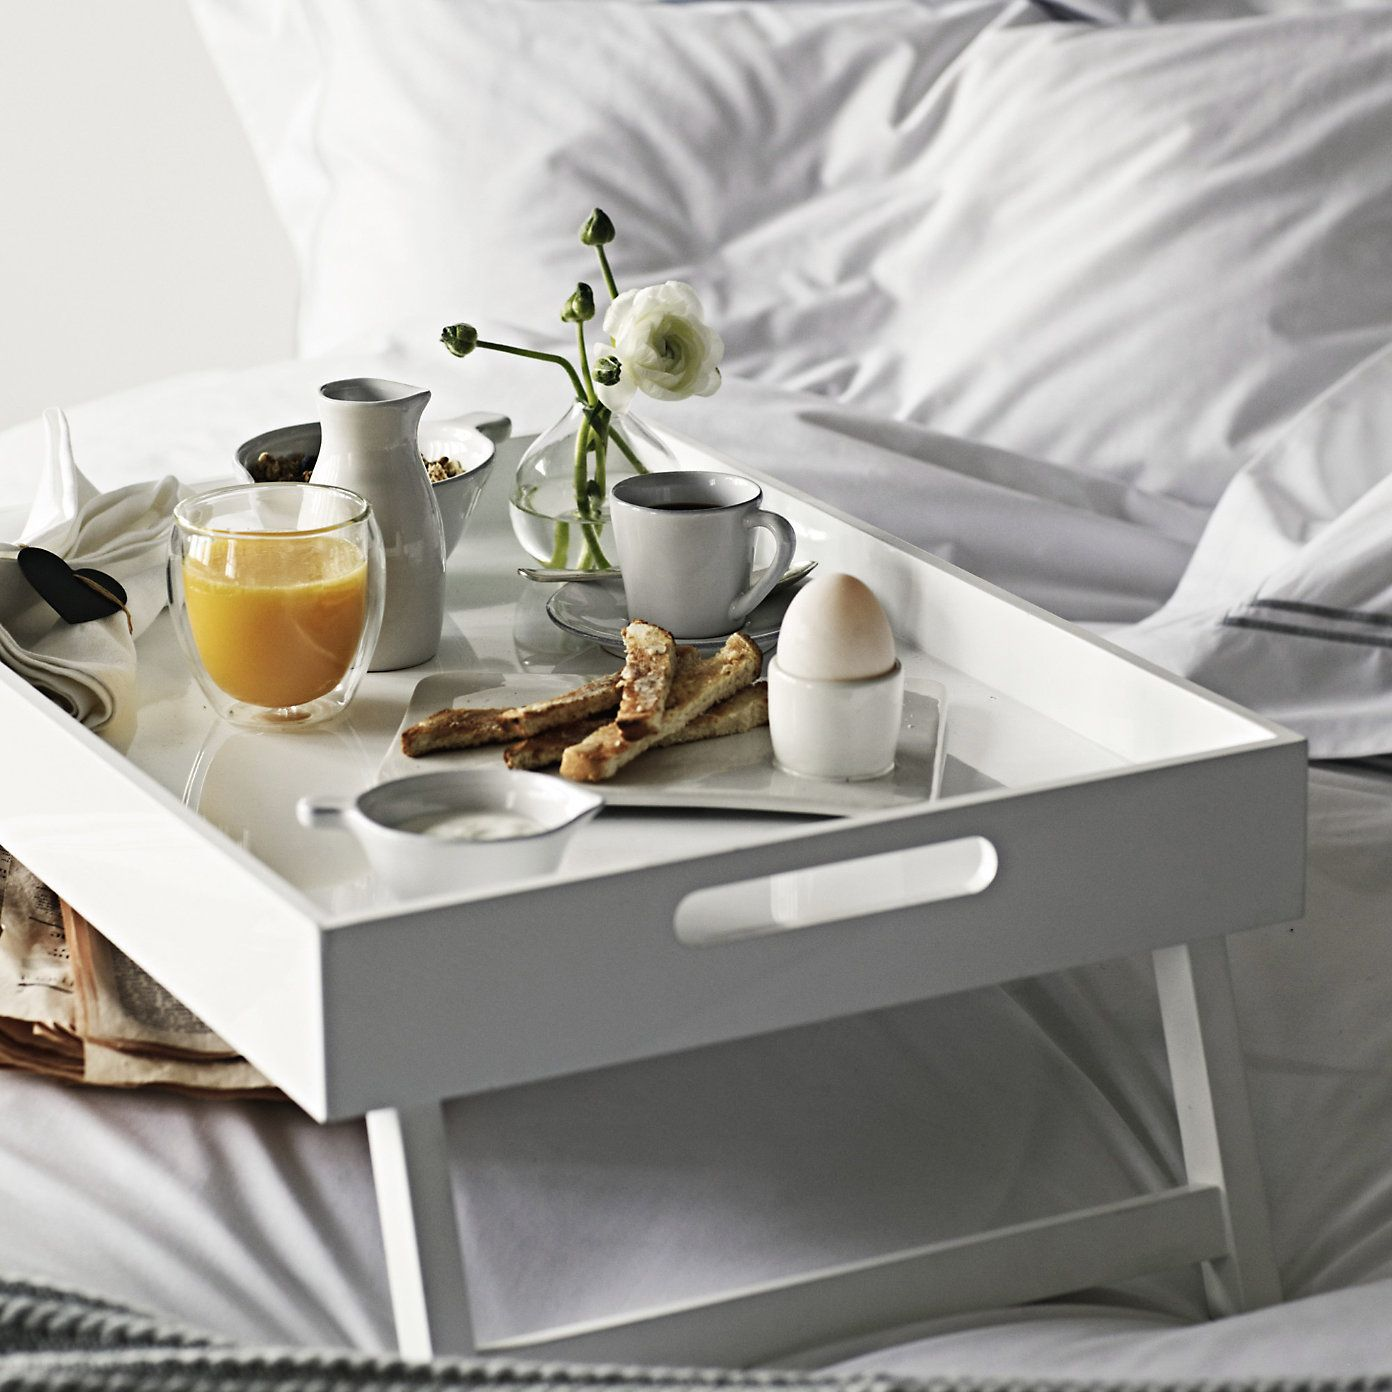 Overbed Table (Bed Tray). Expanding Functionality Element in Modern Home. White unit in the very same light interior atmosphere